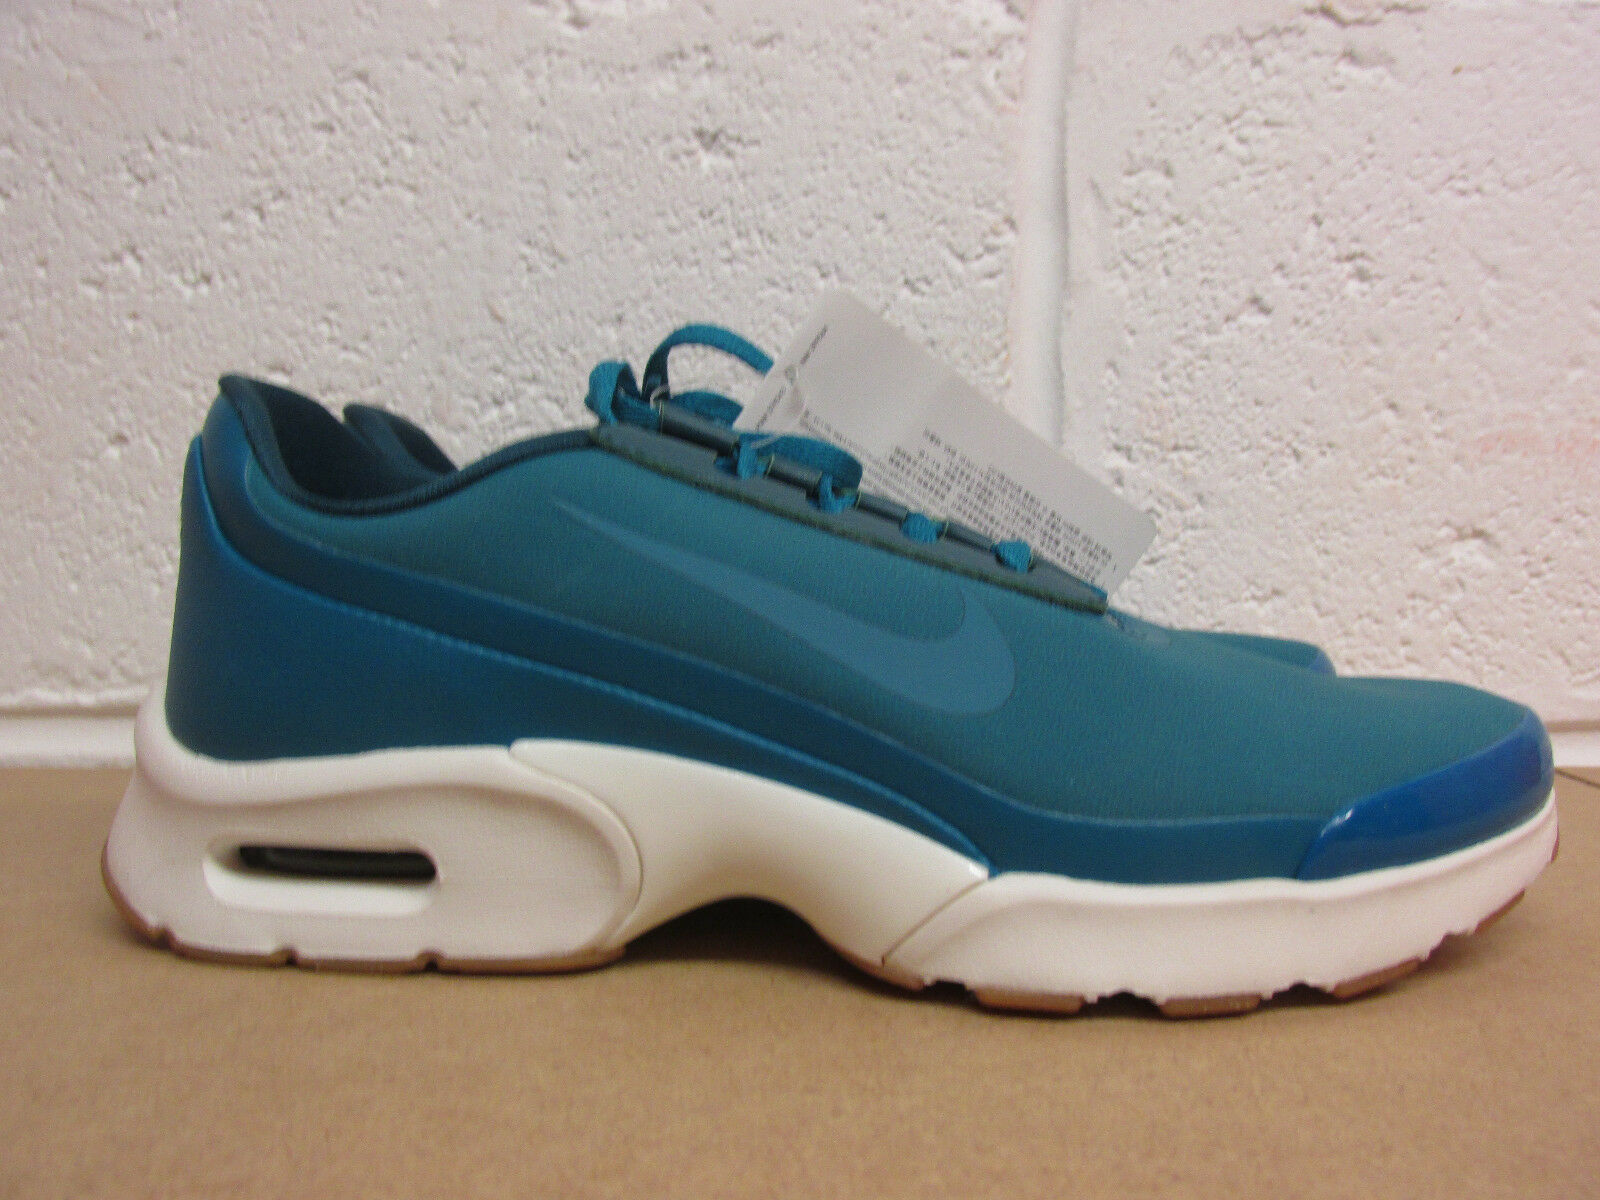 c0e8c501fc Nike air max 896195 401 womens trainers shoes SAMPLE jewell sneakers  nohyyh7340-new shoes